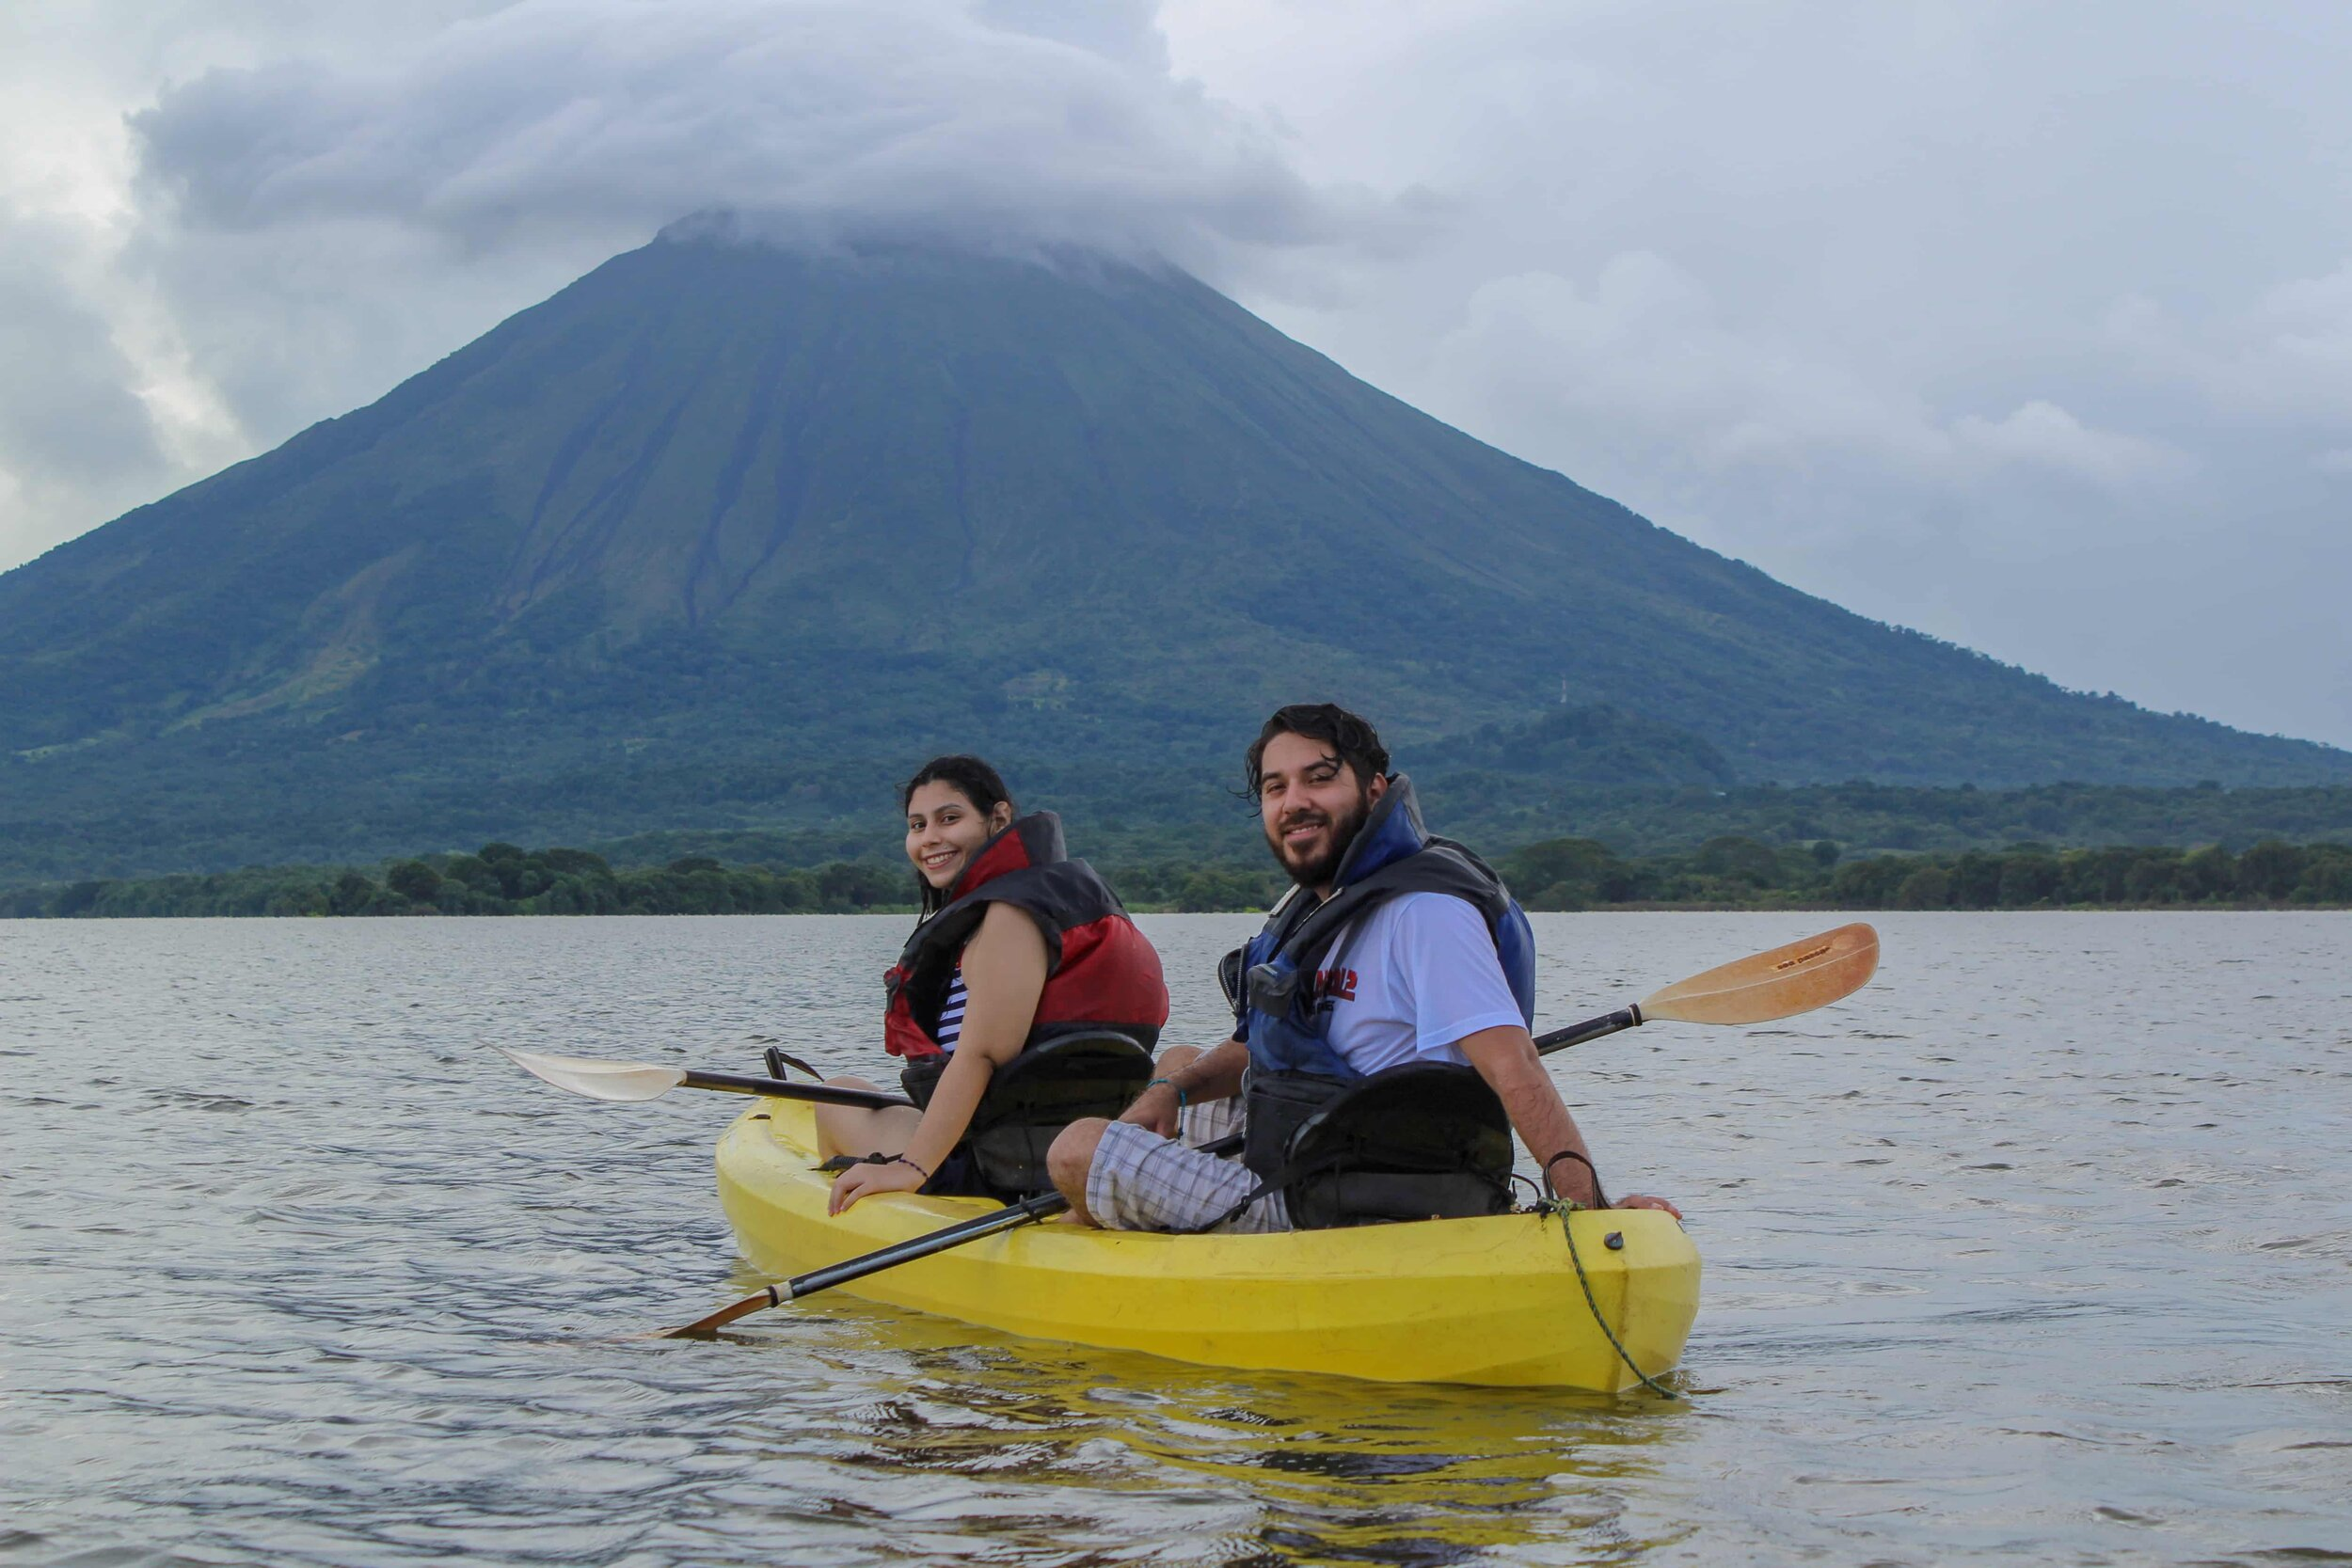 Double kayaks, kayak the istian, famly friendly adventure activities on Ometepe with friends, Volcano Views, Lake Cocibolca